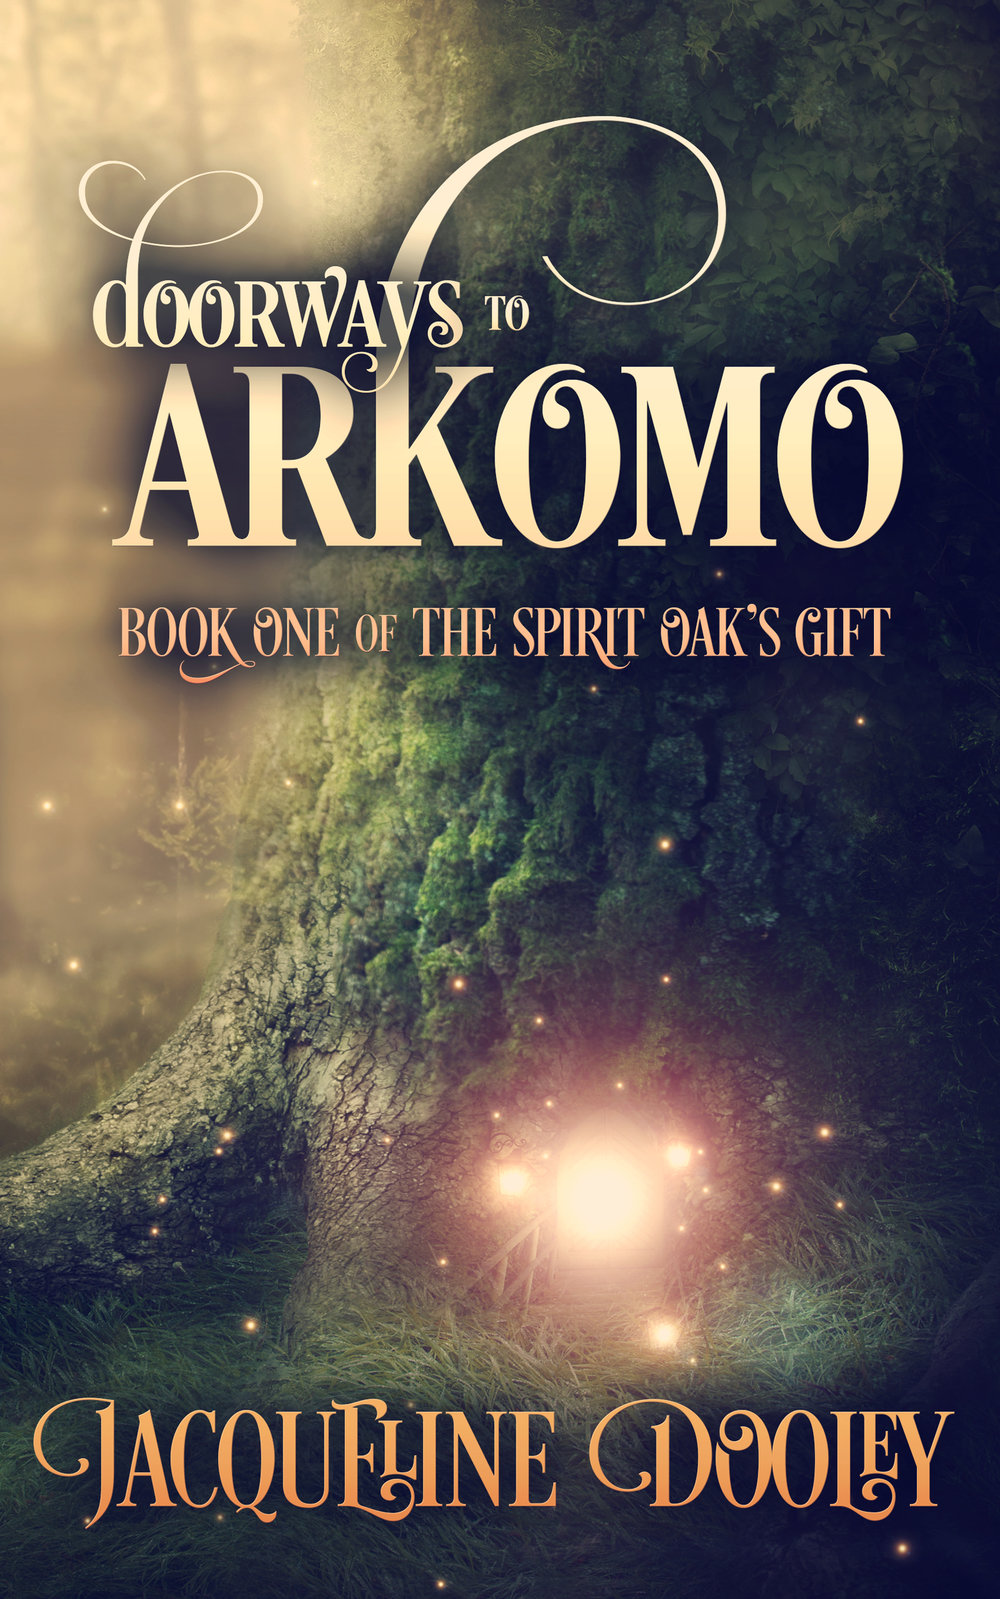 Doorways to Arkomo - Published May 2014